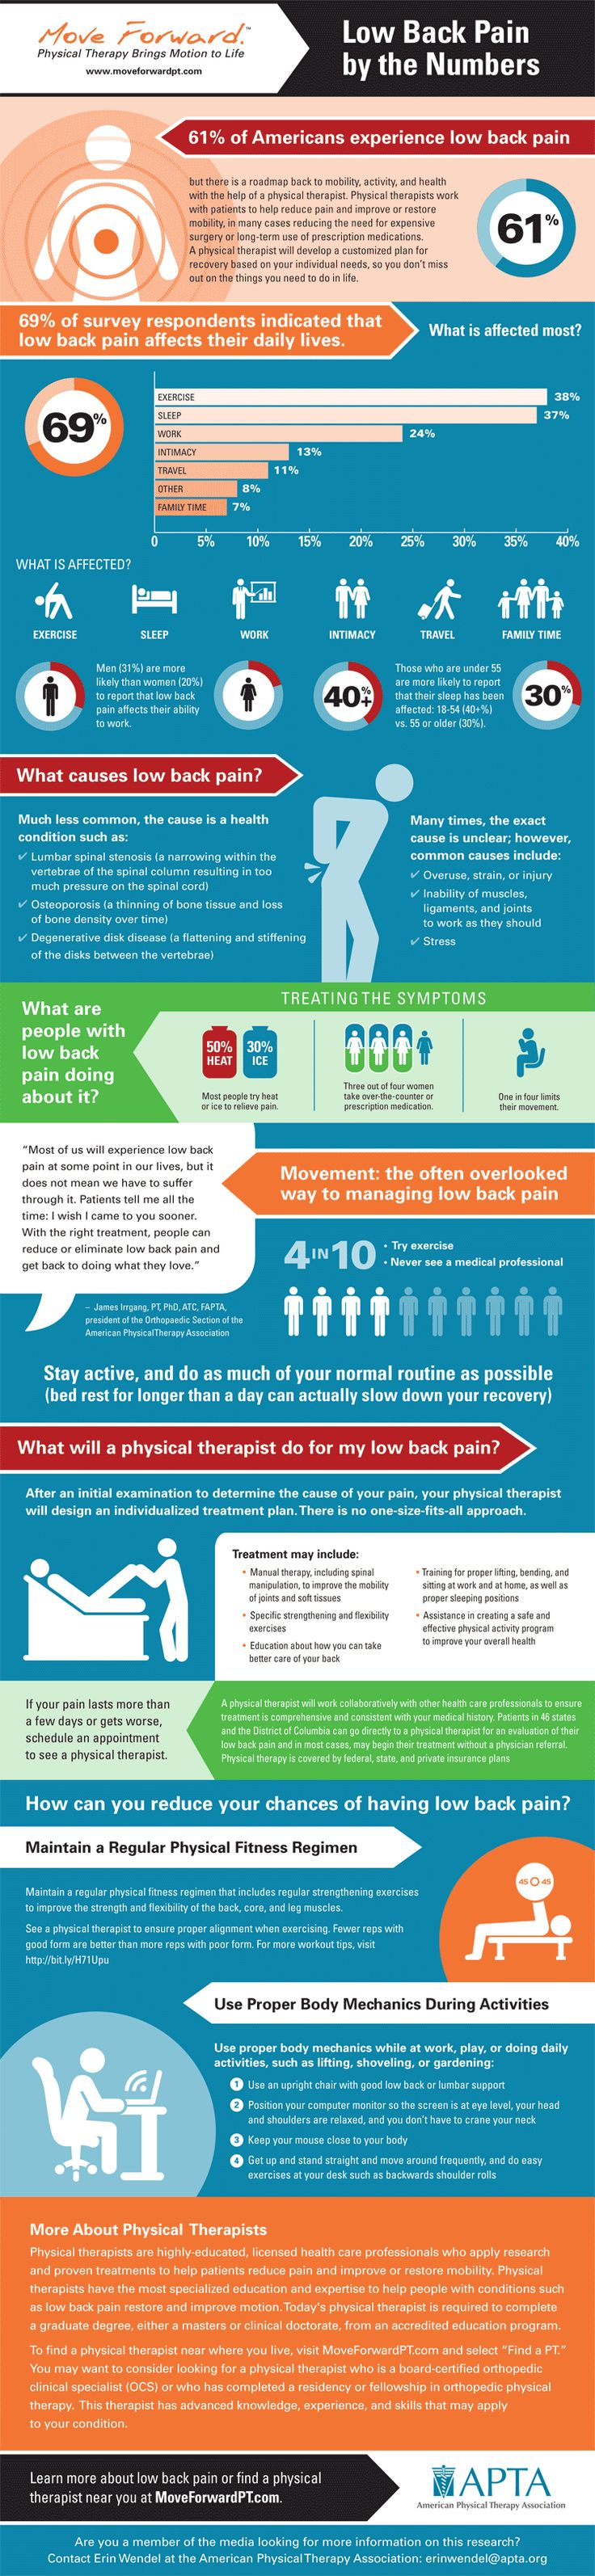 Are you one of the 61% of Canadians to suffer from low back pain?